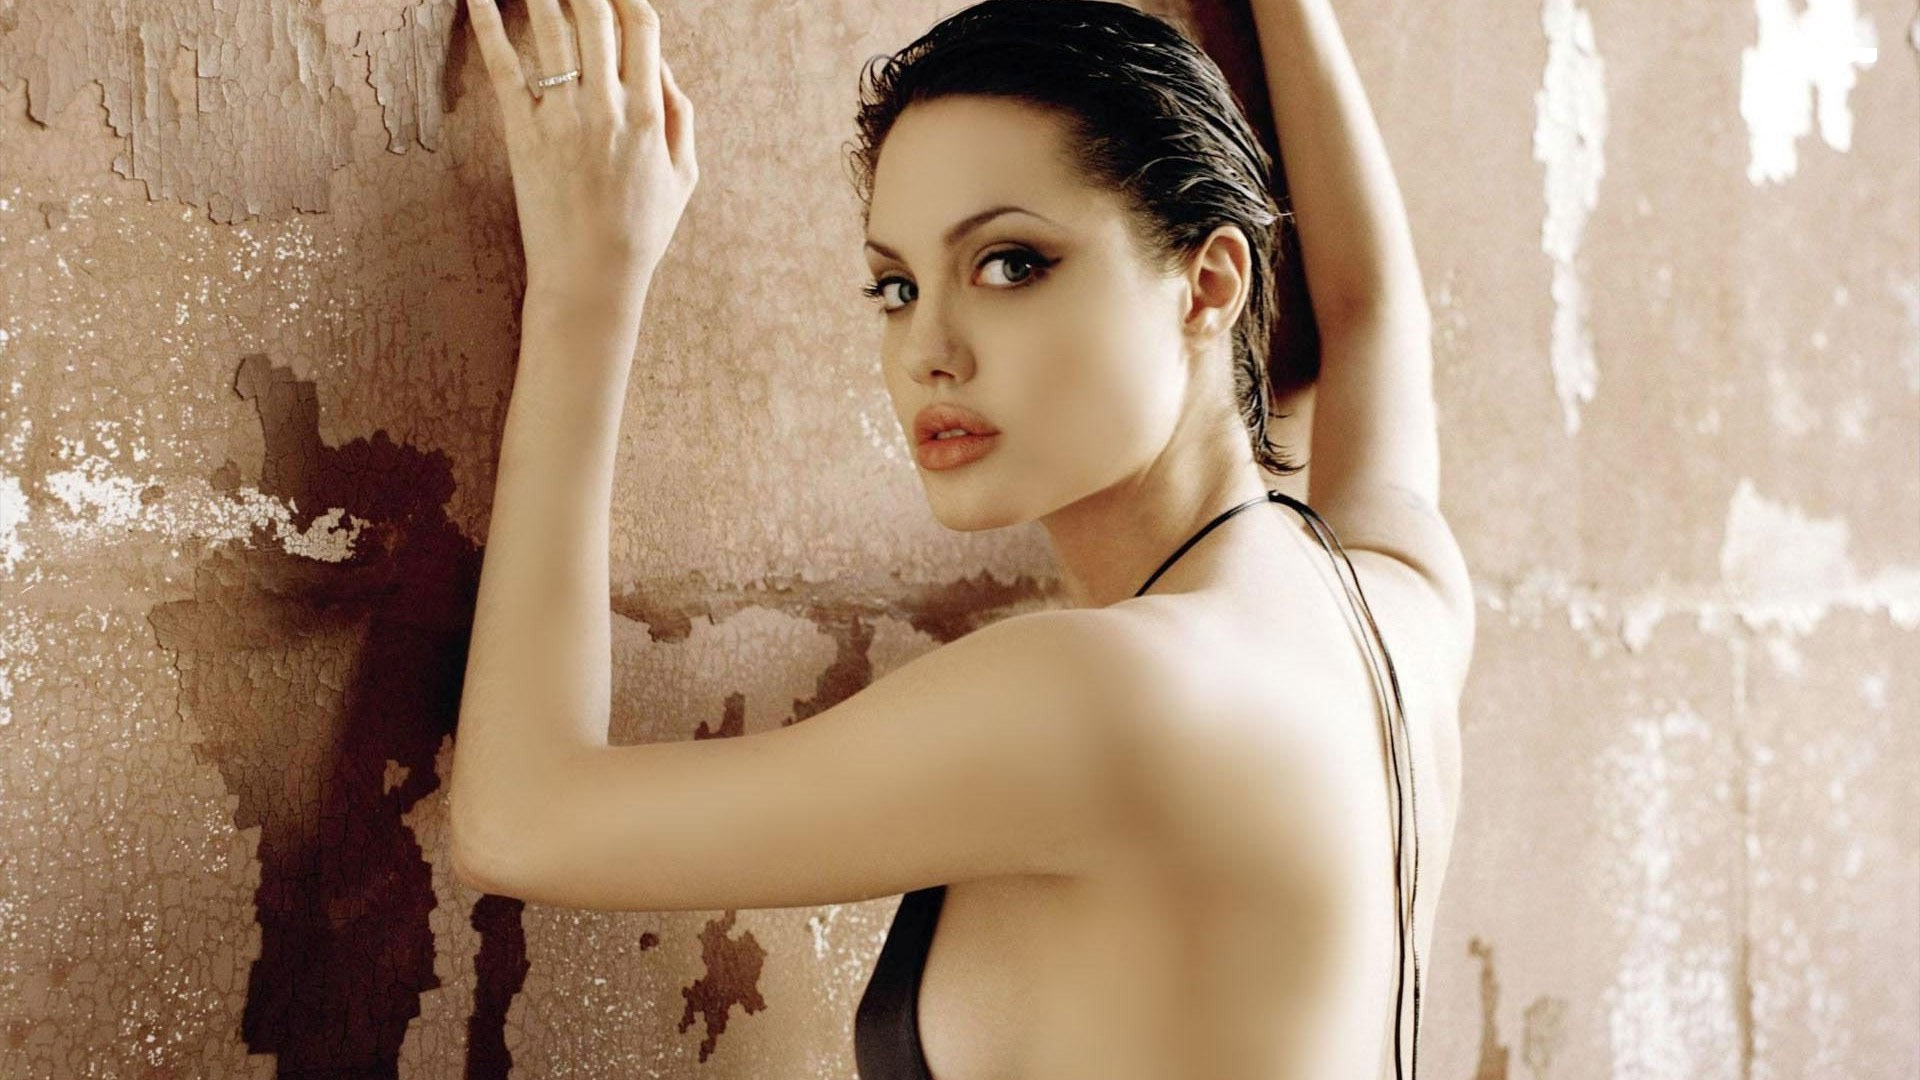 Angelina Jolie Hot And Sexy Pics hollywood actresses list with photos and name hot - most